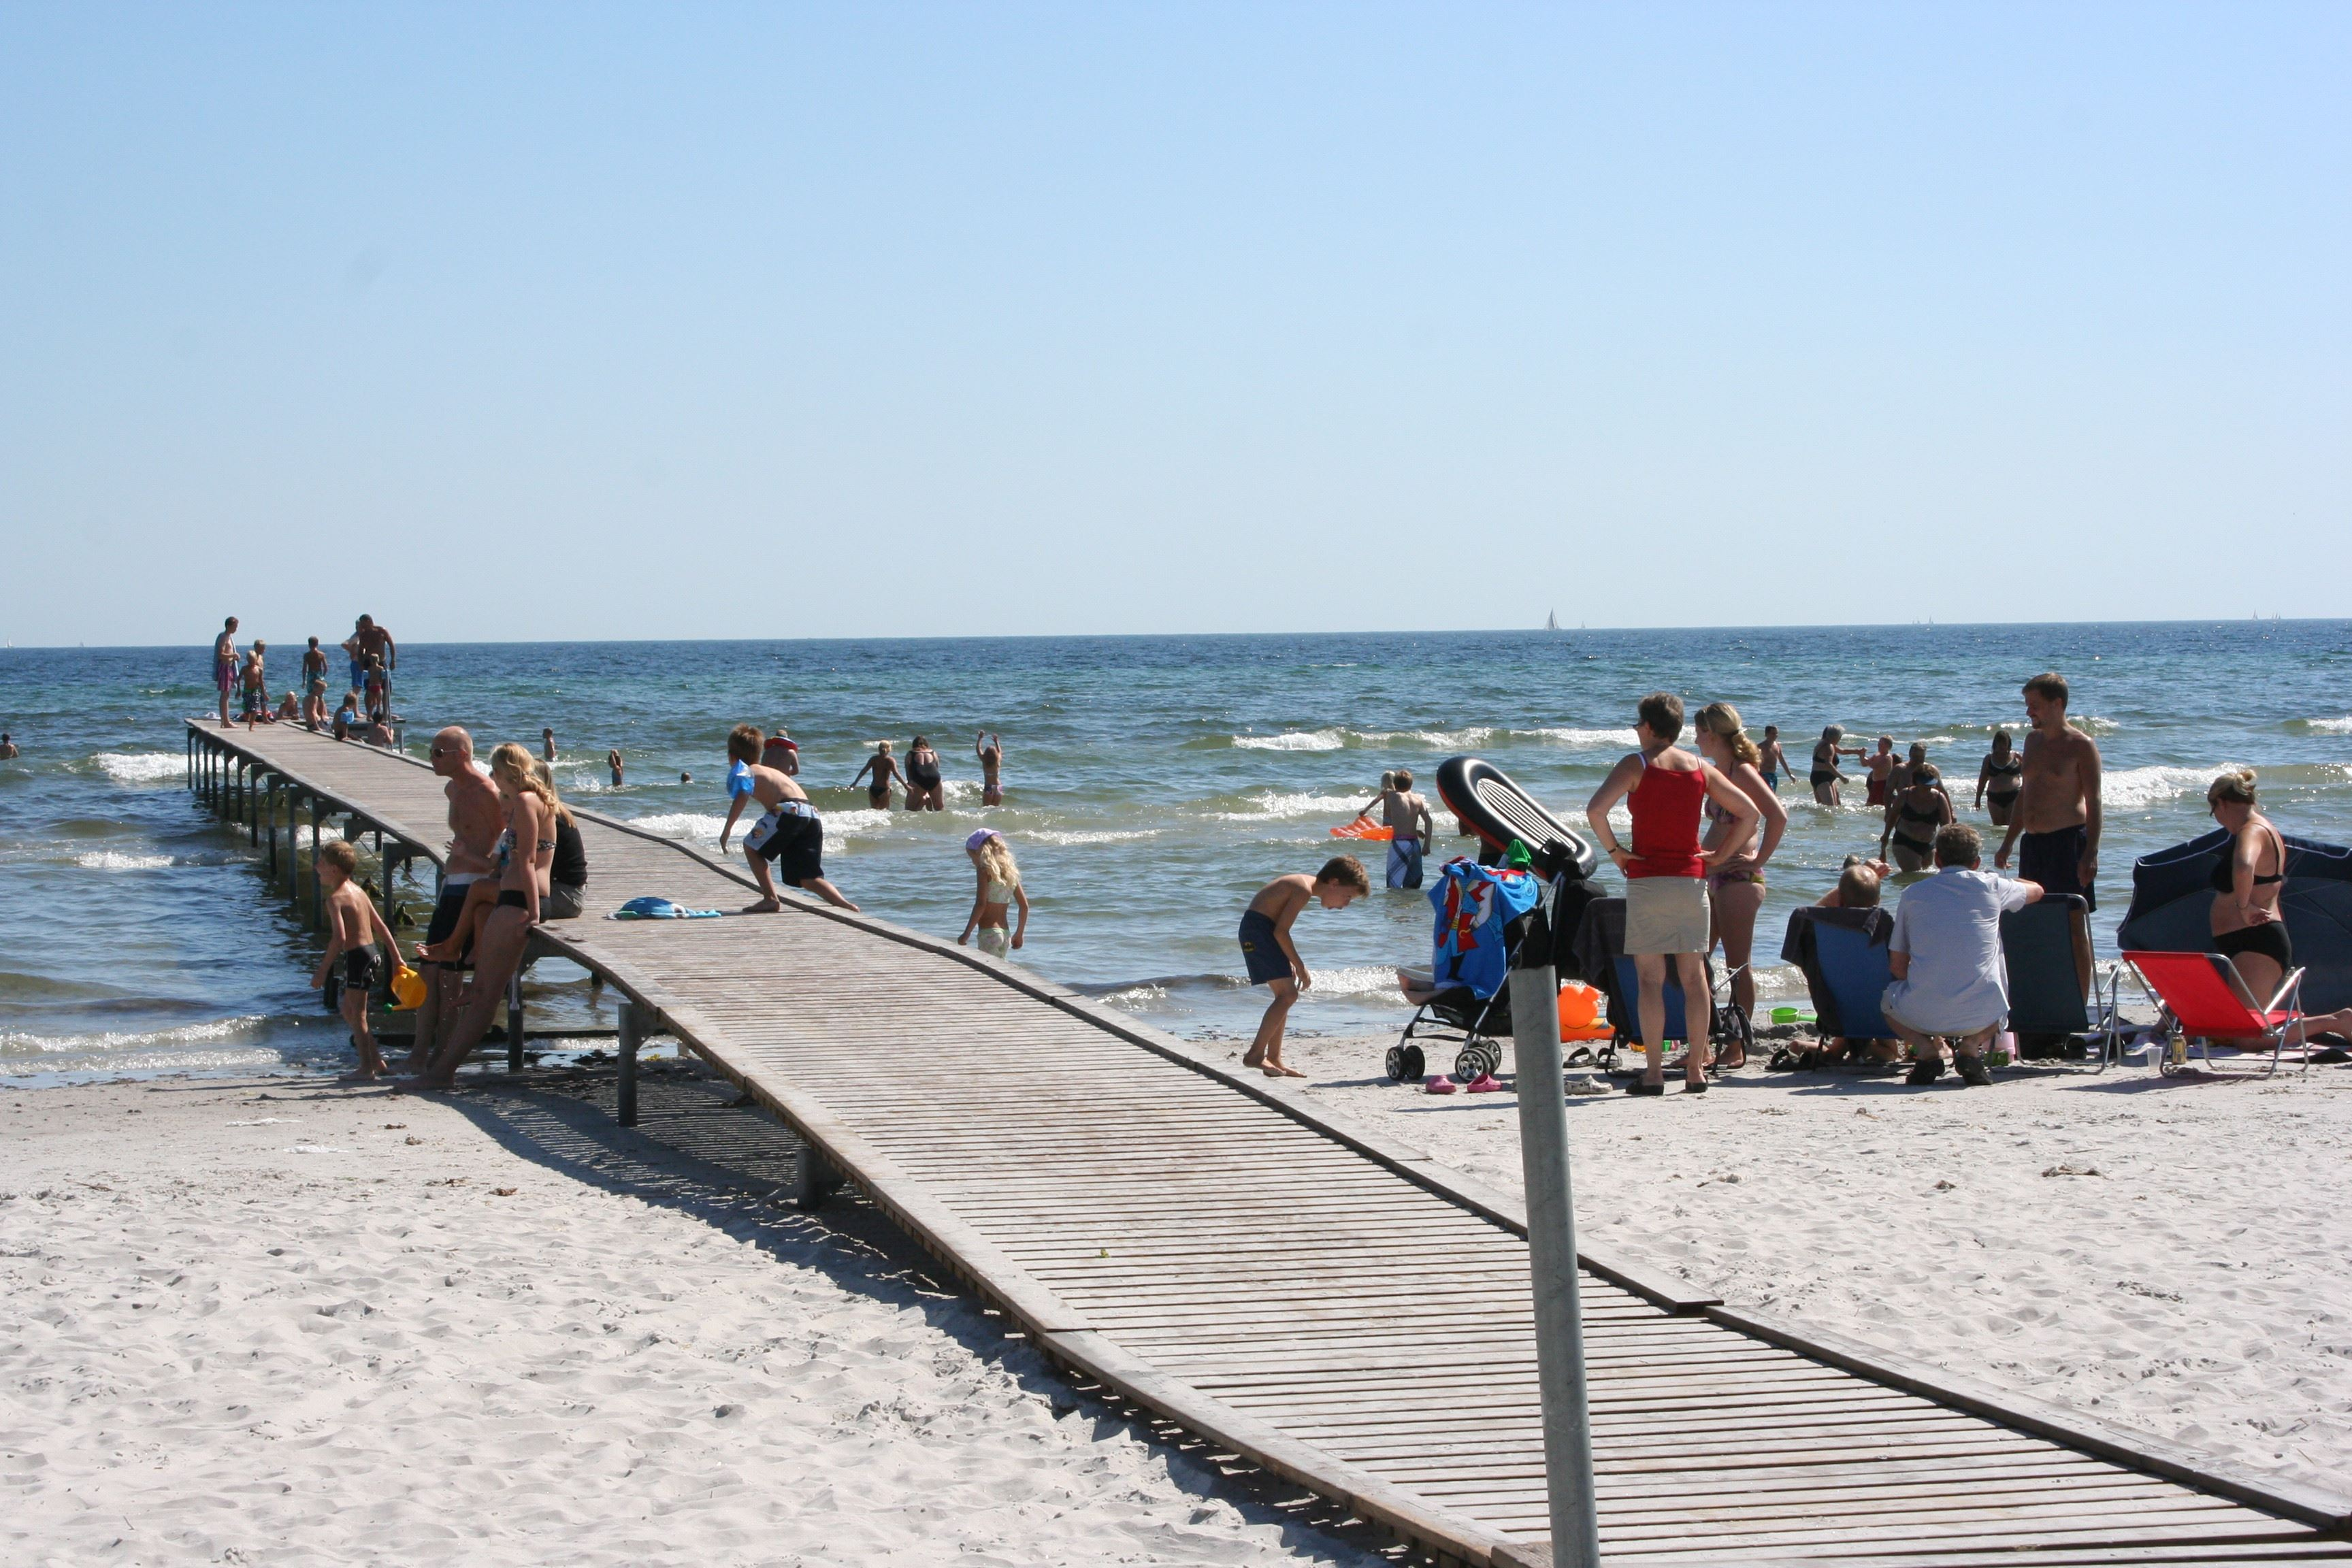 Gun Andersson, Bingsmarken Beach with a jetty including a ramp, suitable for the disabled